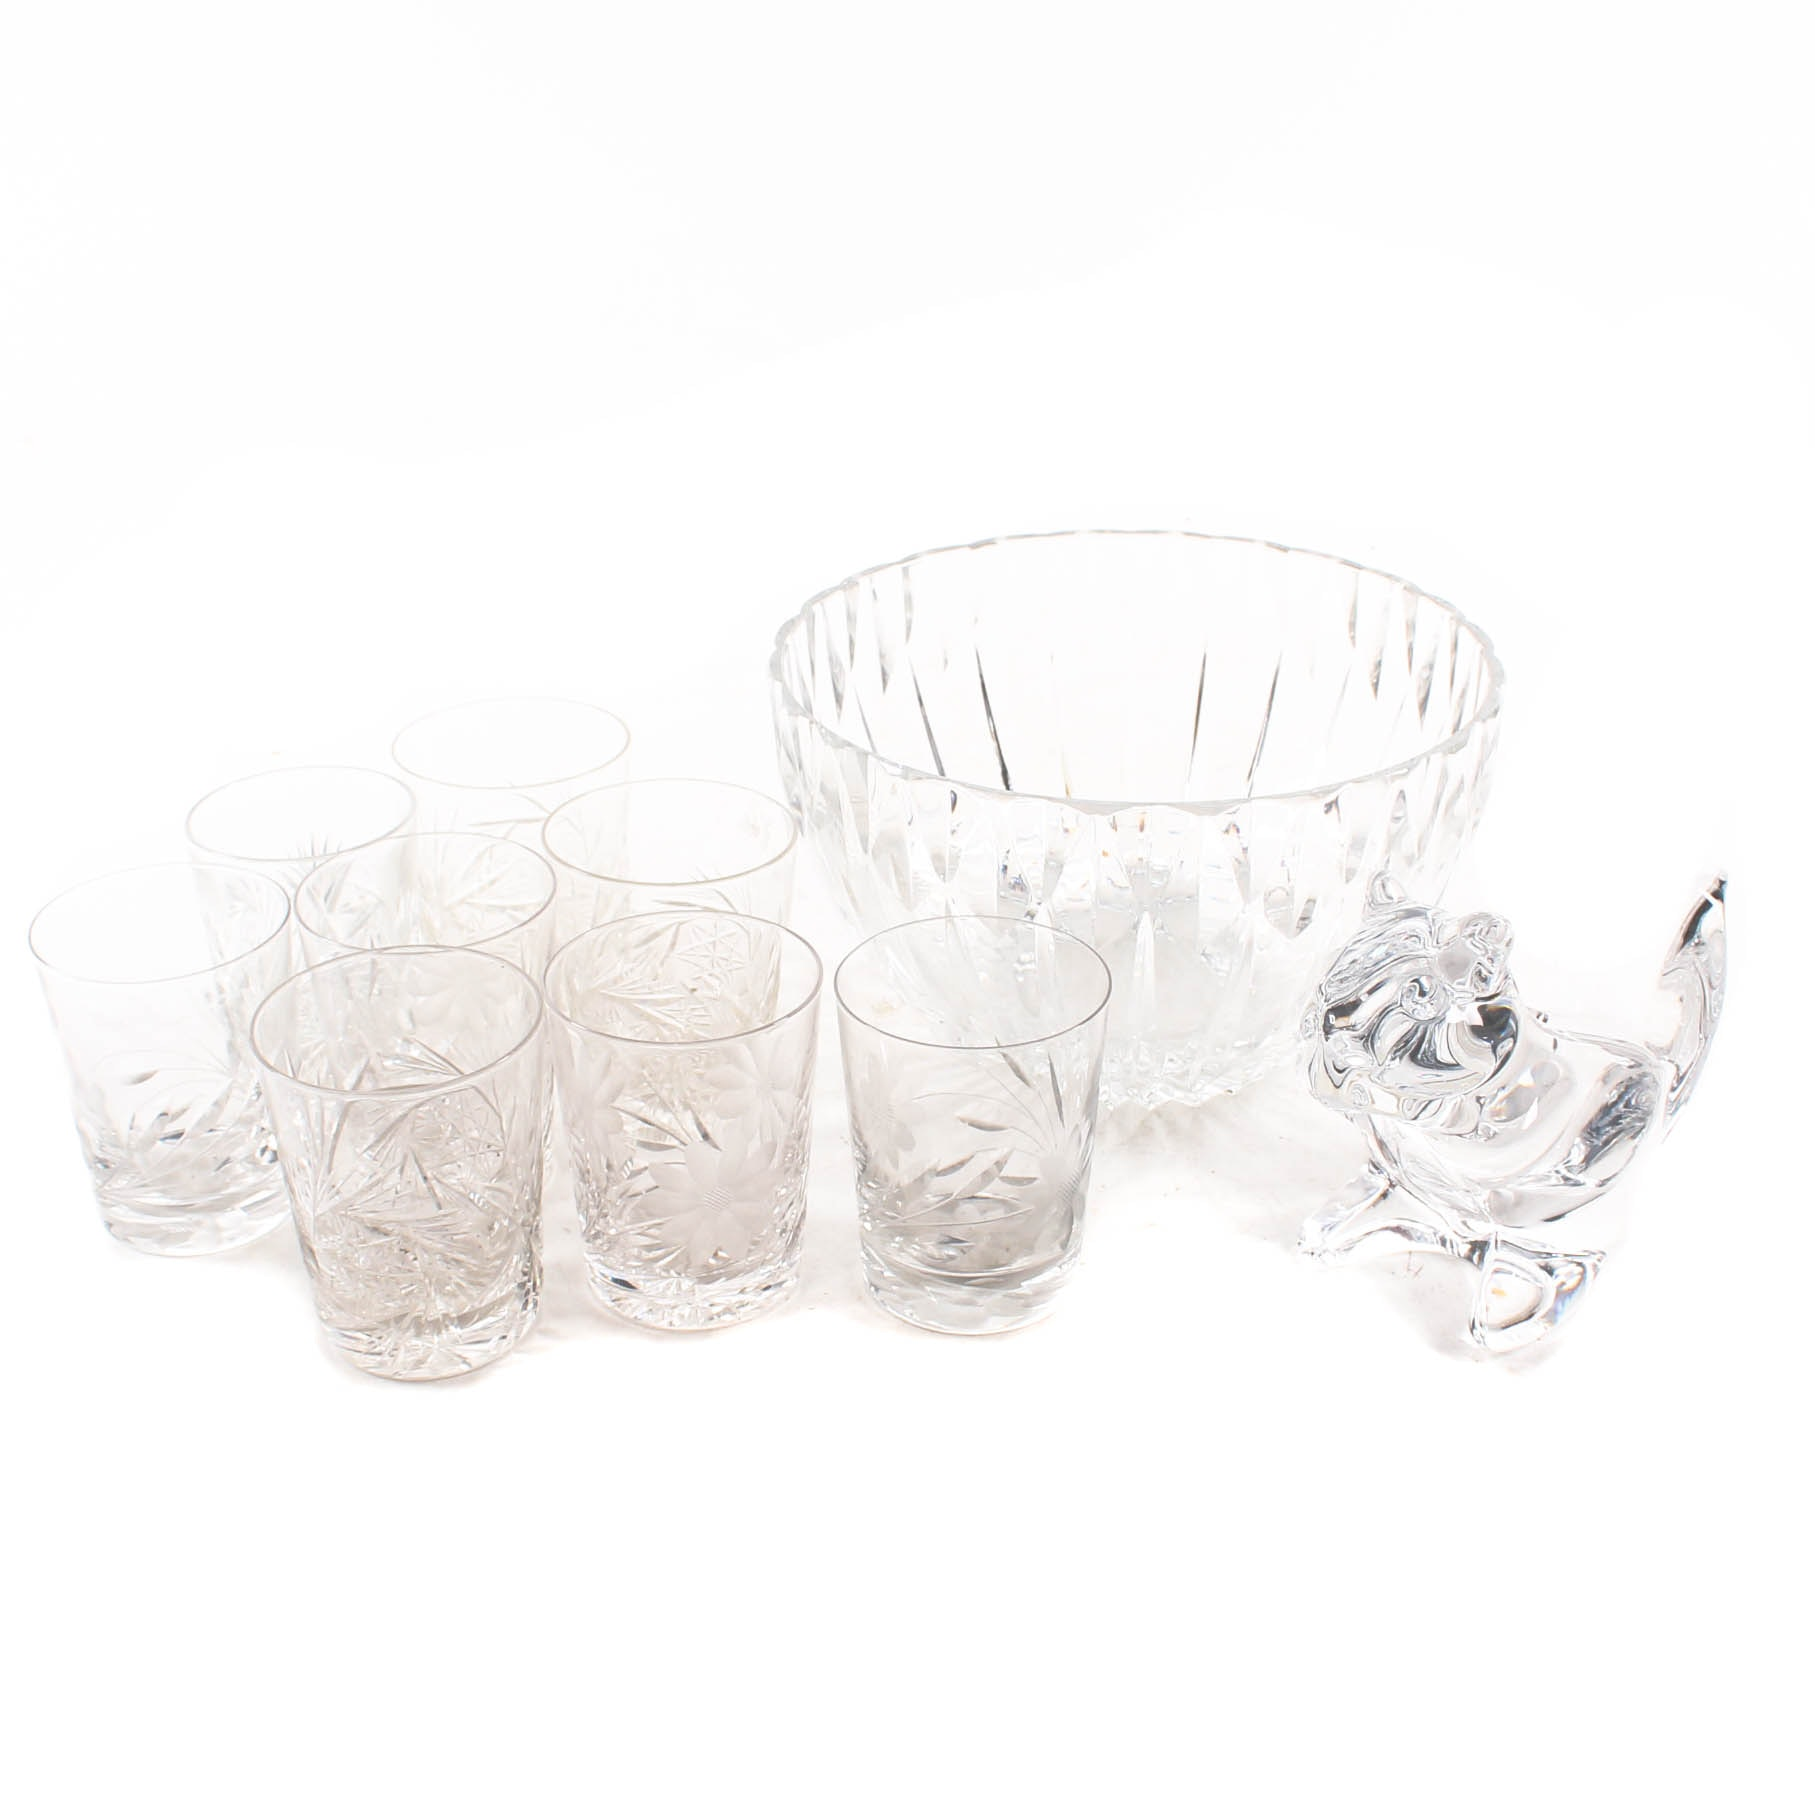 Crystal Decor and and Cut Glass Old Fashioned Glasses